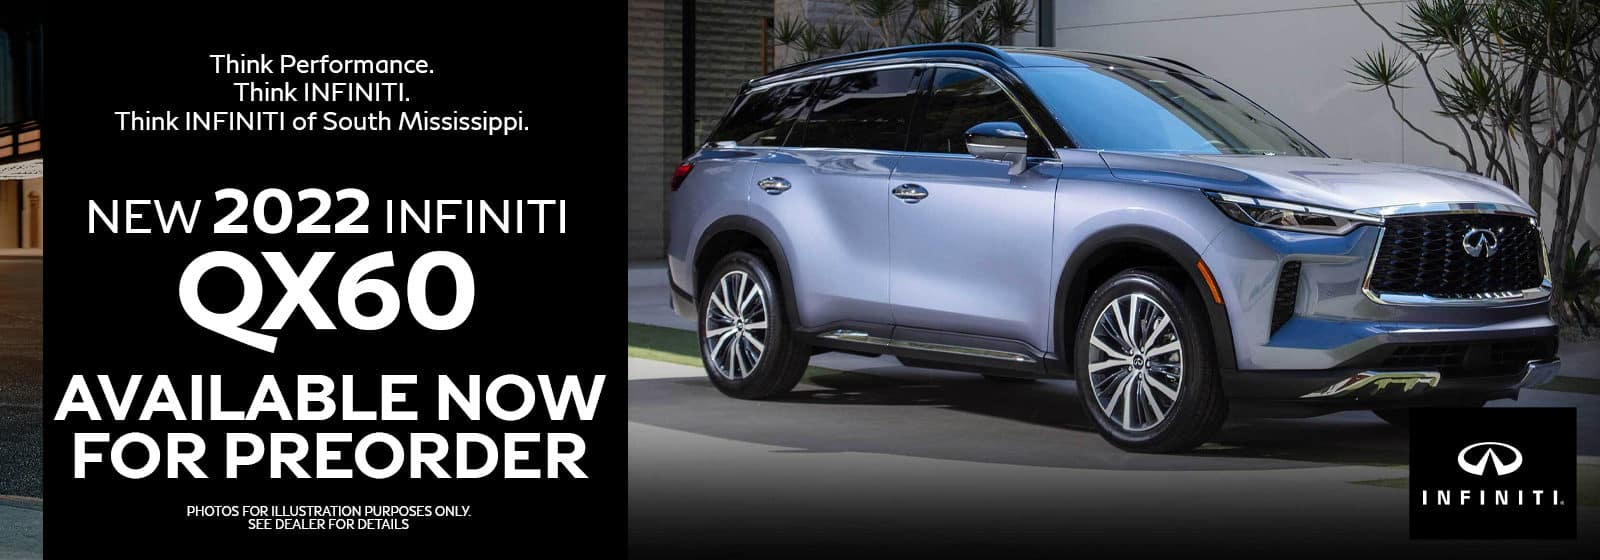 2022 INFINITI QX60 Available now for pre order